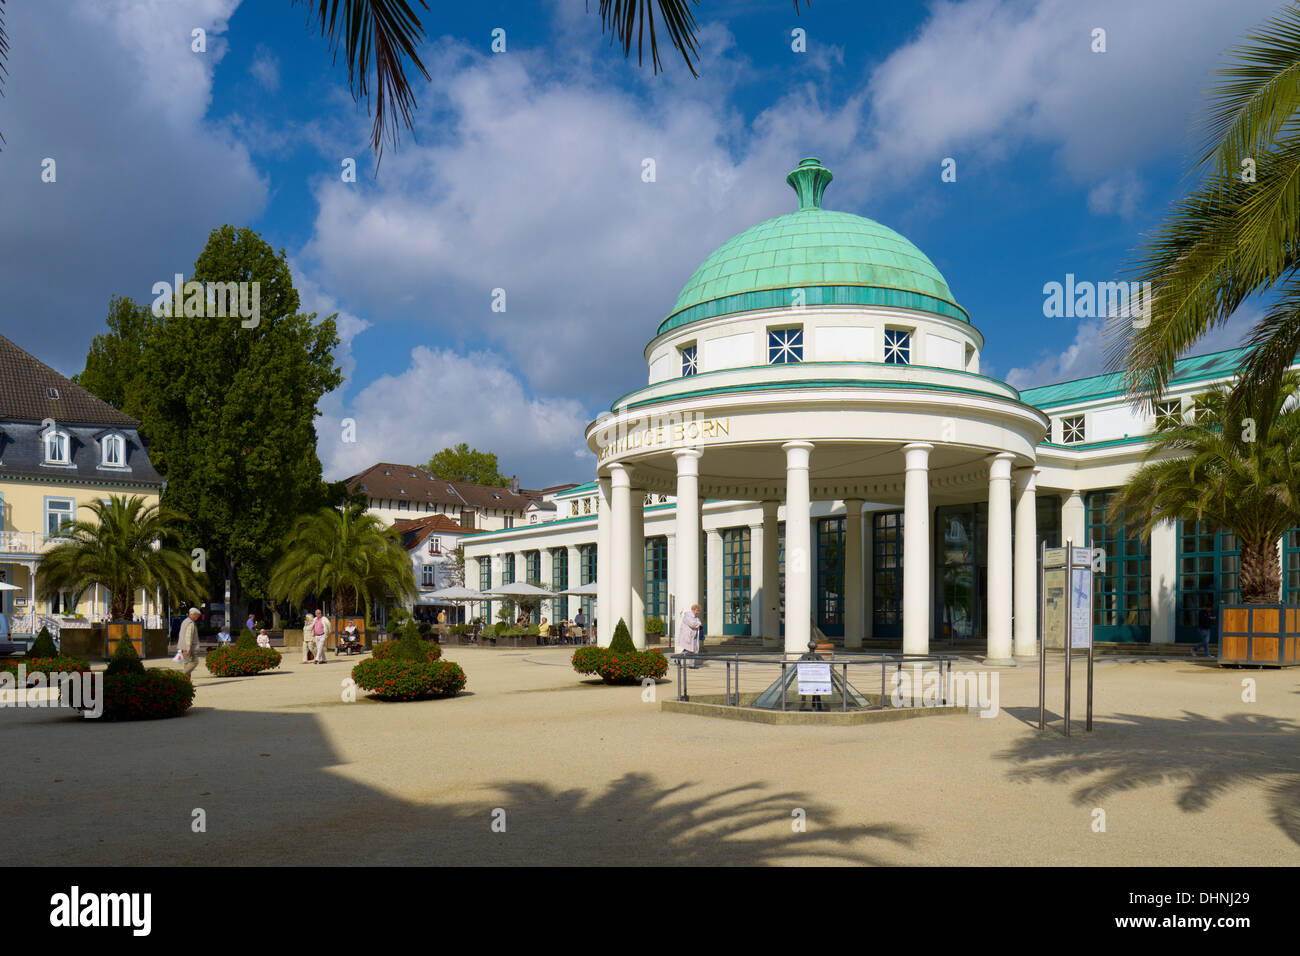 Pump room and the Hyllige Born, Bad Pyrmont, Lower Saxony, Germany - Stock Image